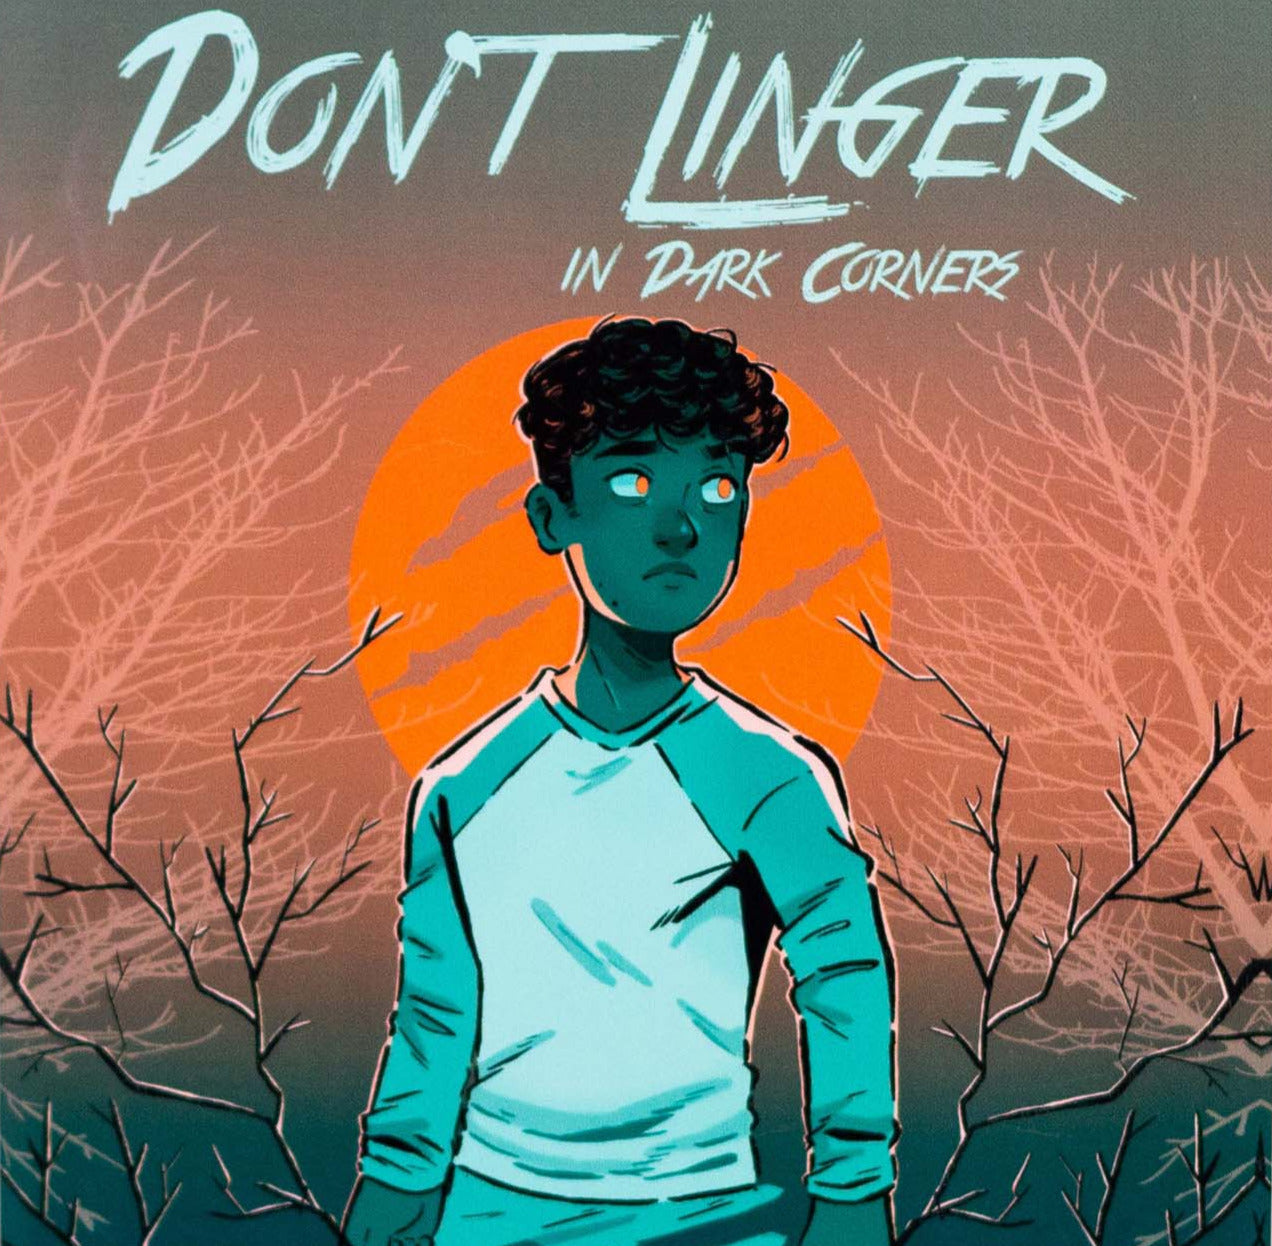 Don't Linger in Dark Corners, graphic novel